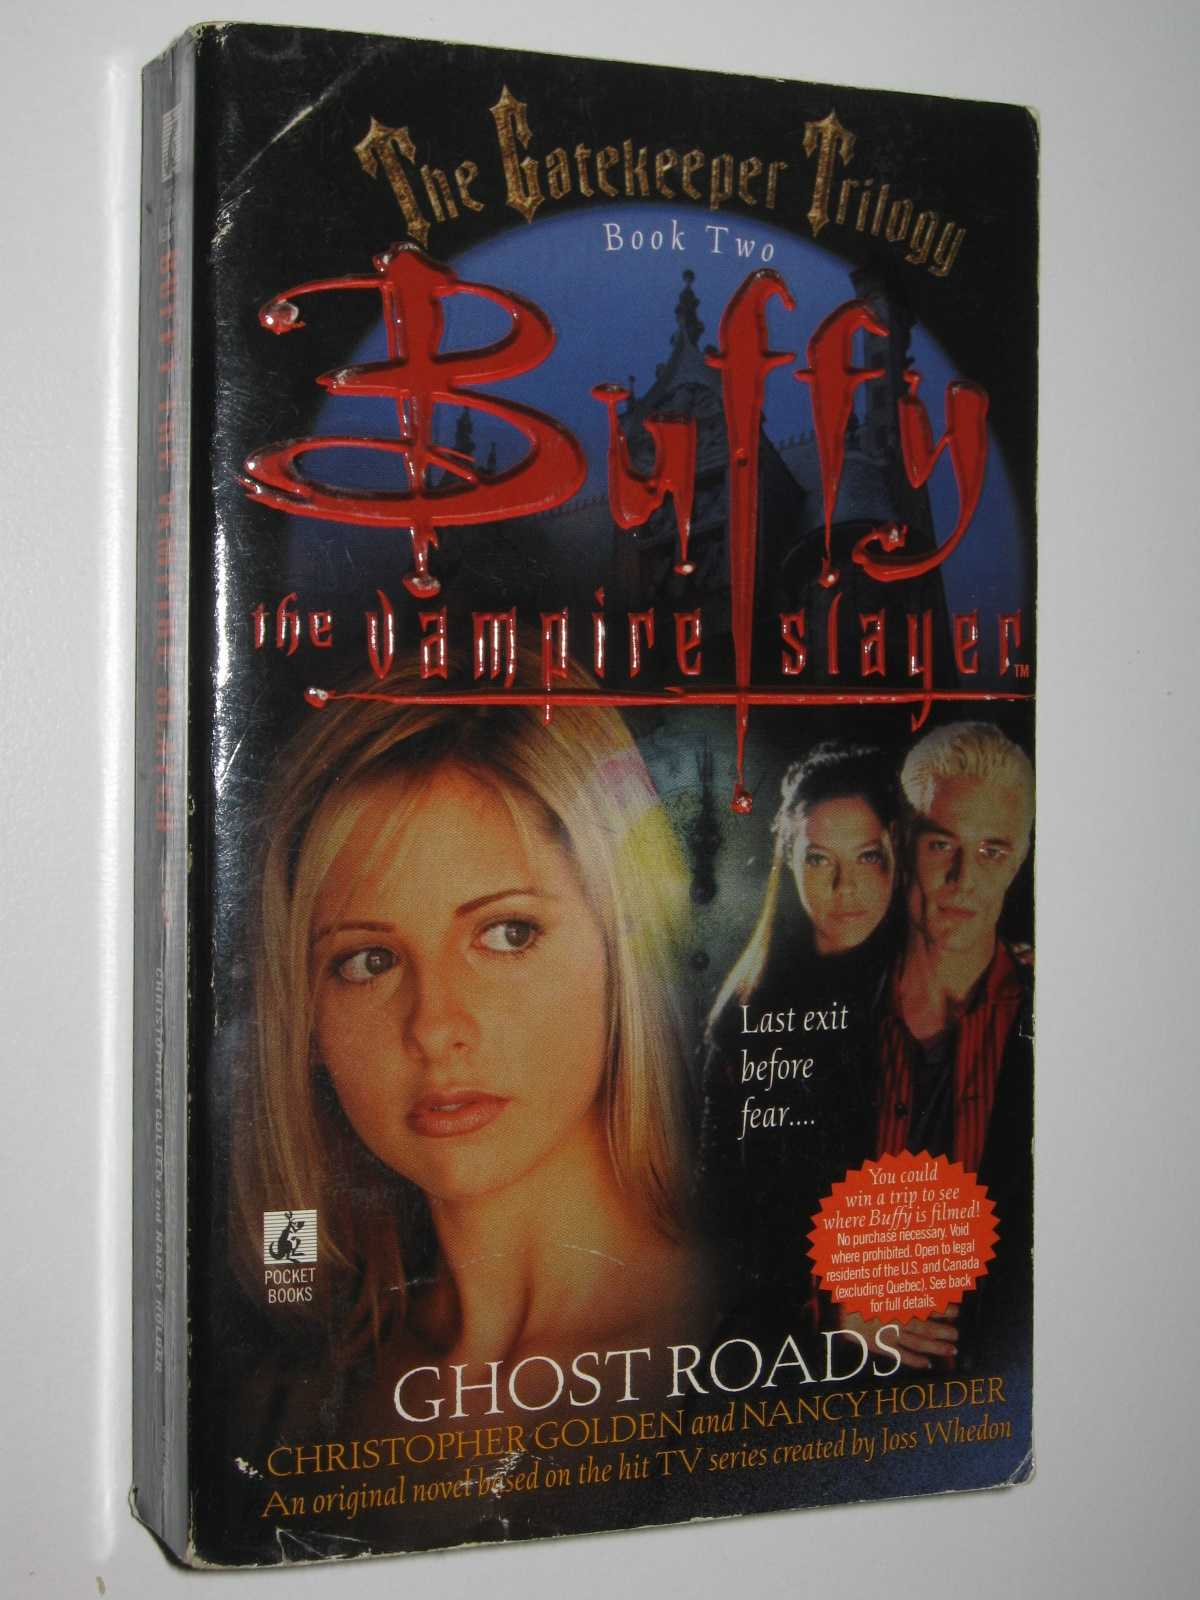 Ghost Roads: Buffy the Vampire Slayer - The Gatekeeper Trilogy #2, Golden, Christopher & Holder, Nancy